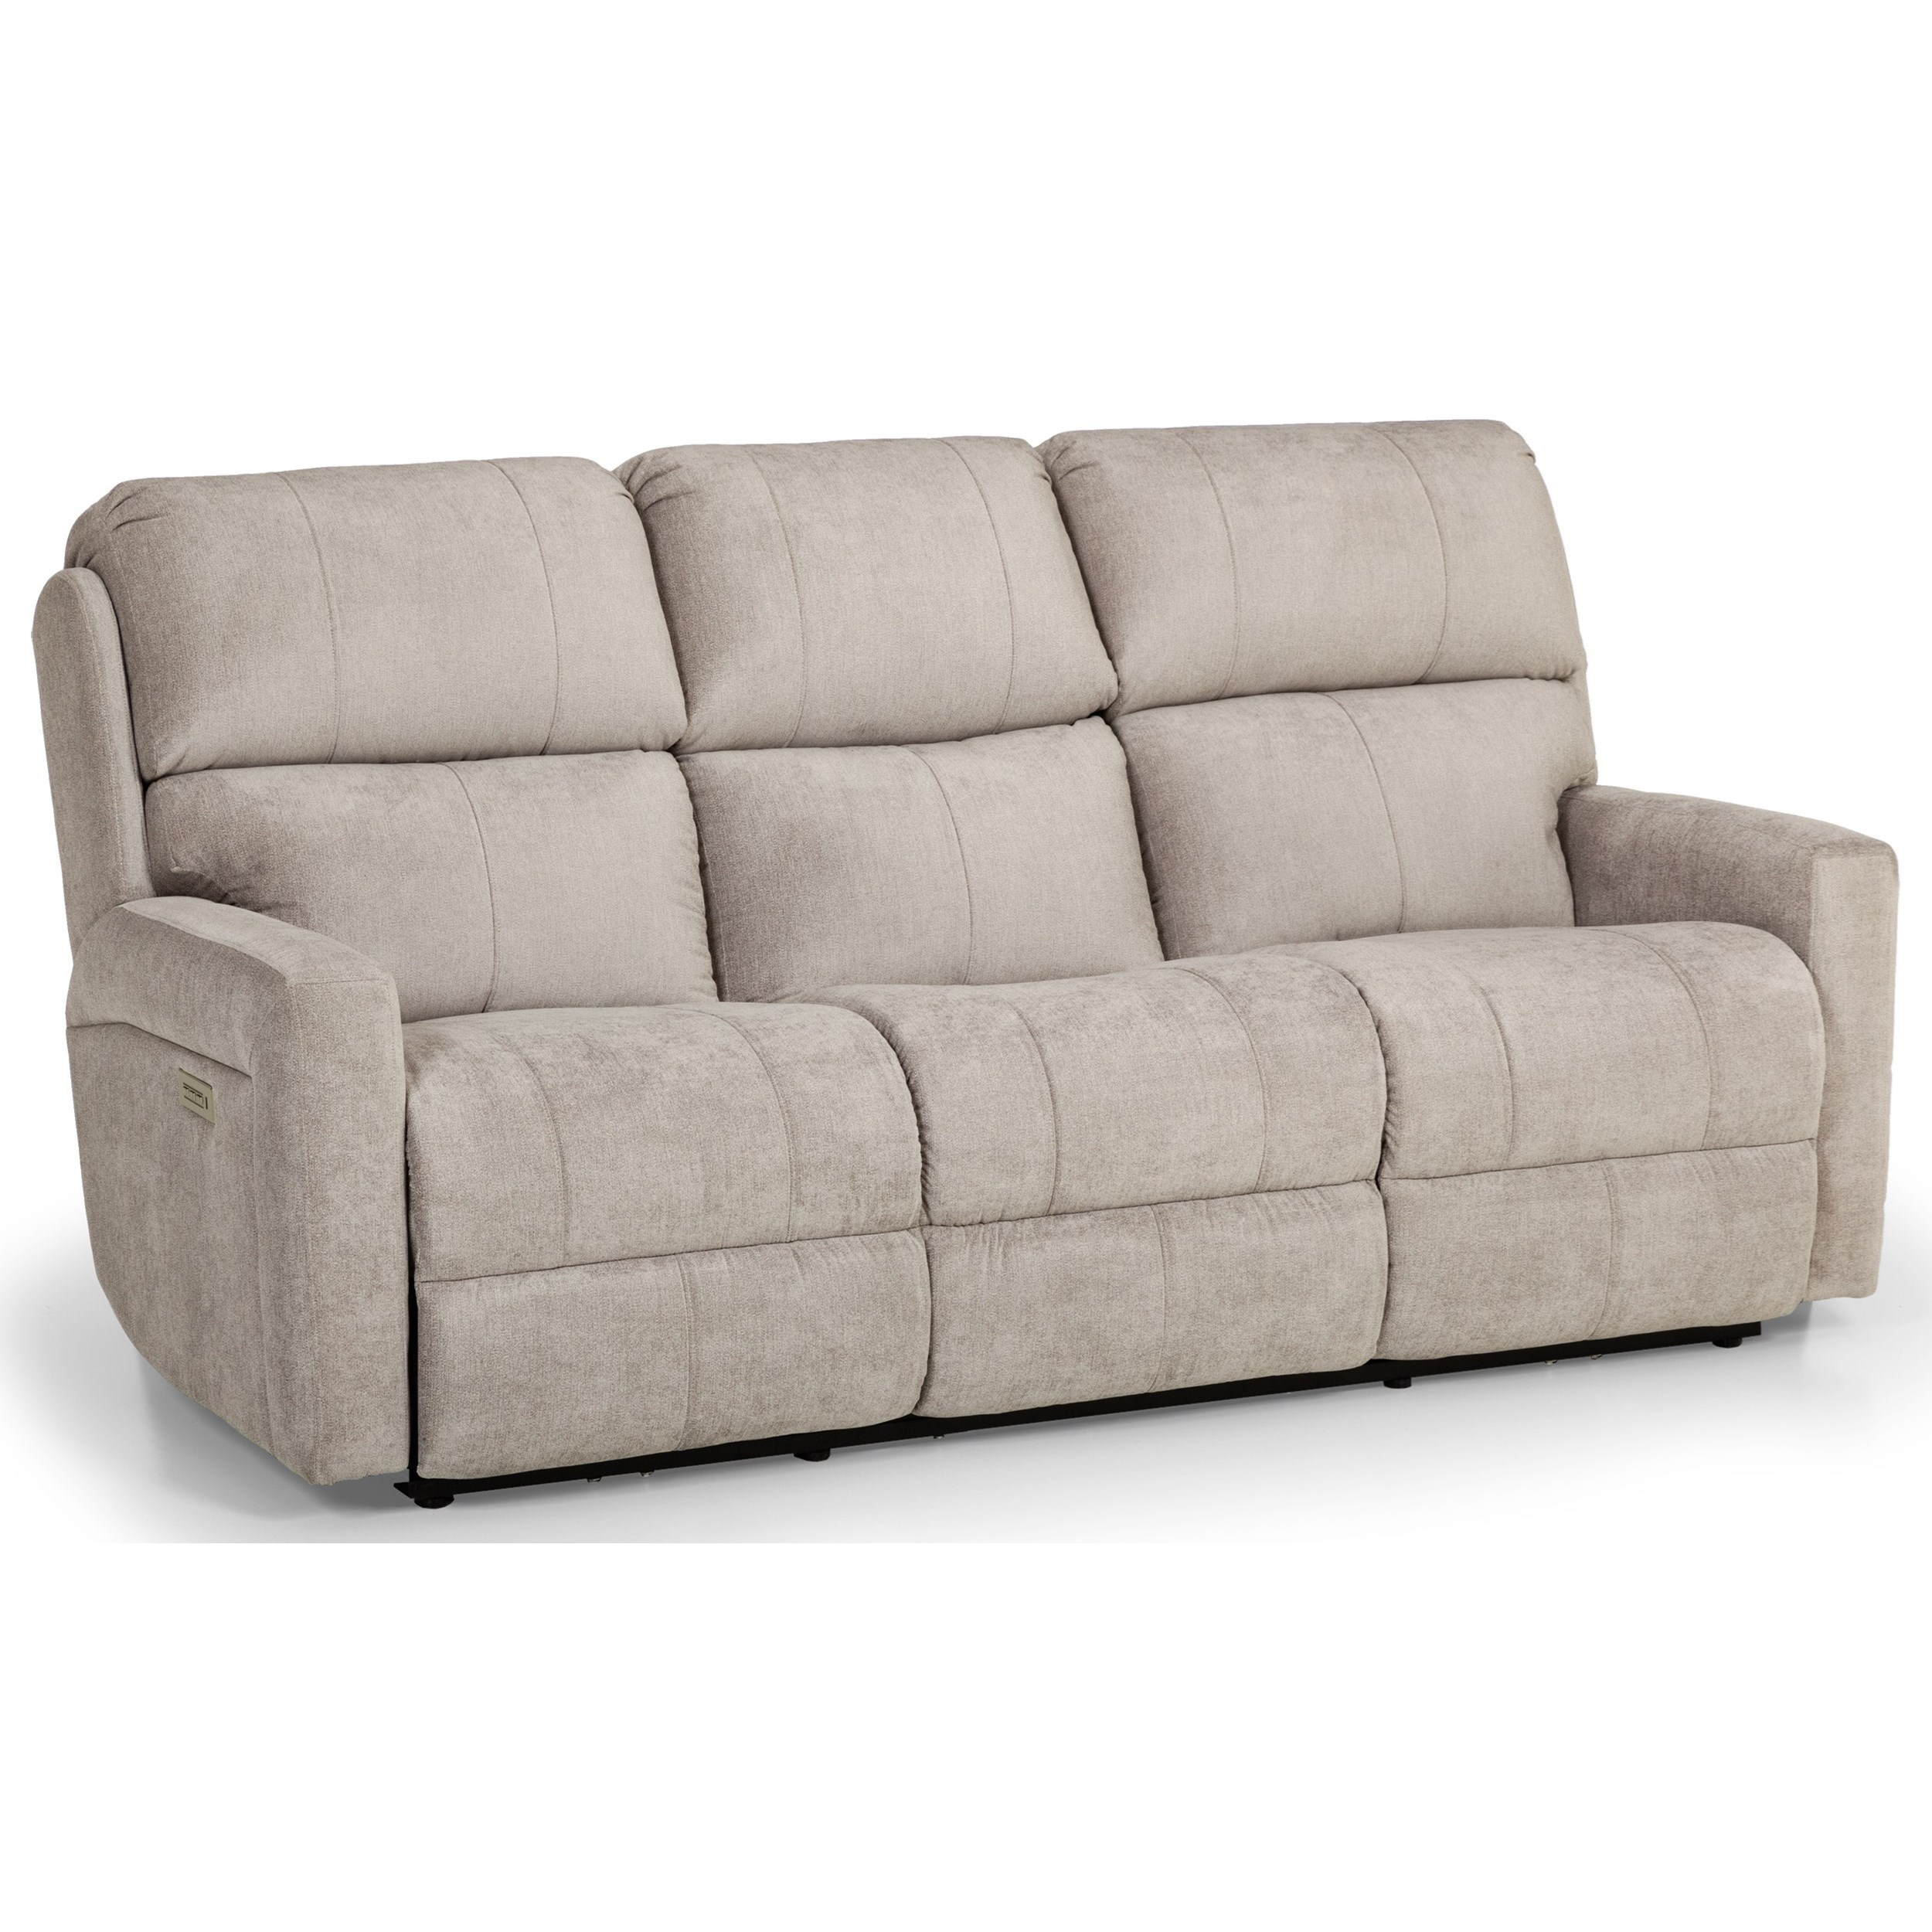 945 Reclining Sofa by Sunset Home at Sadler's Home Furnishings